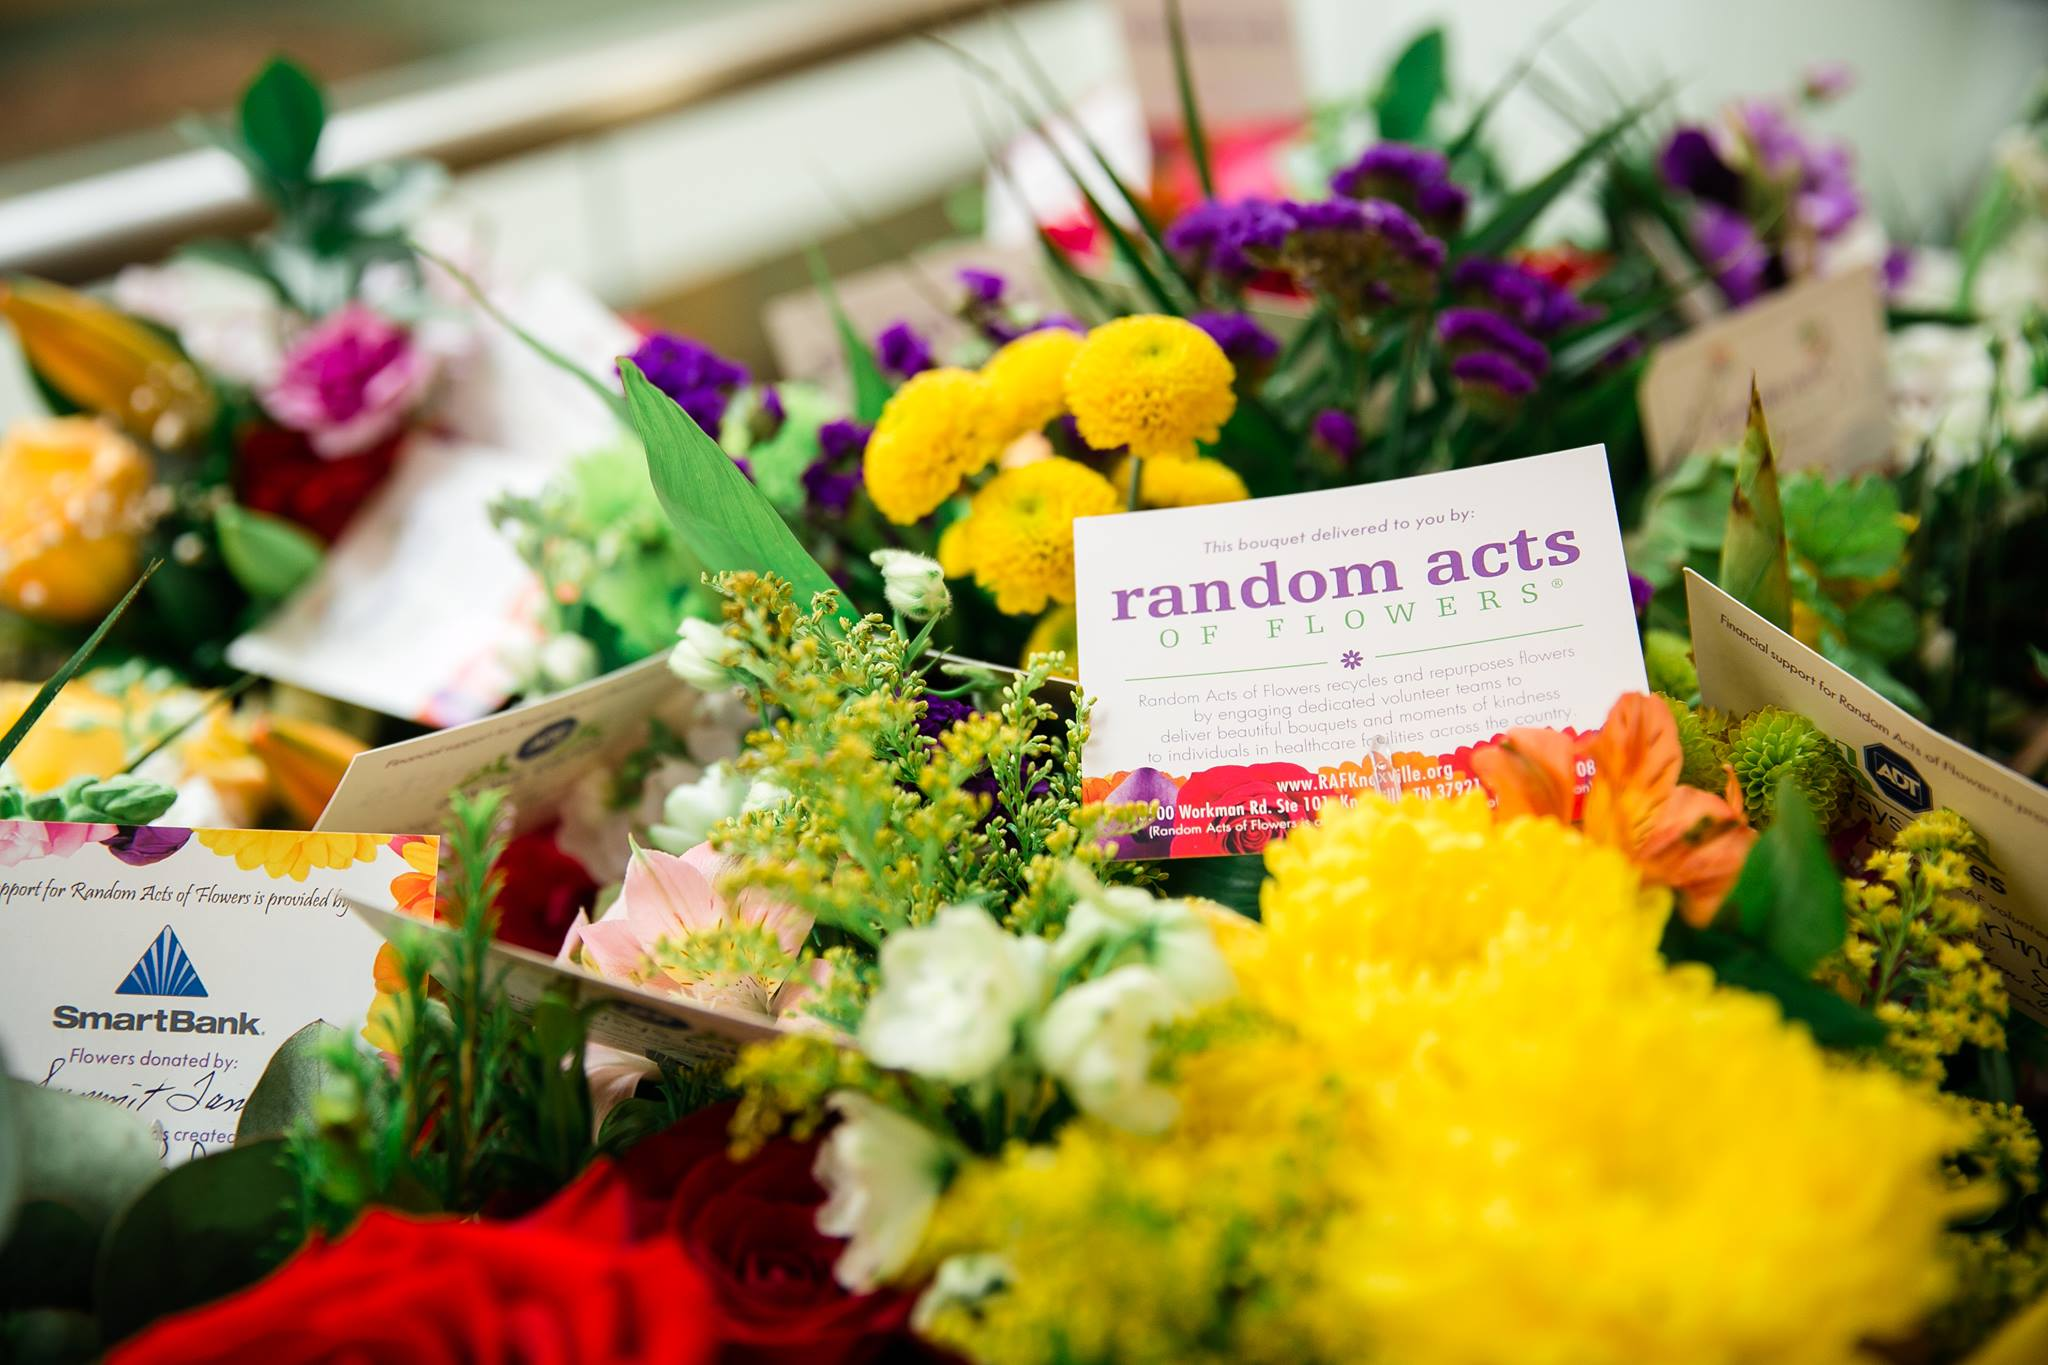 Flower arrangements with Random Acts of Flowers delivery cards